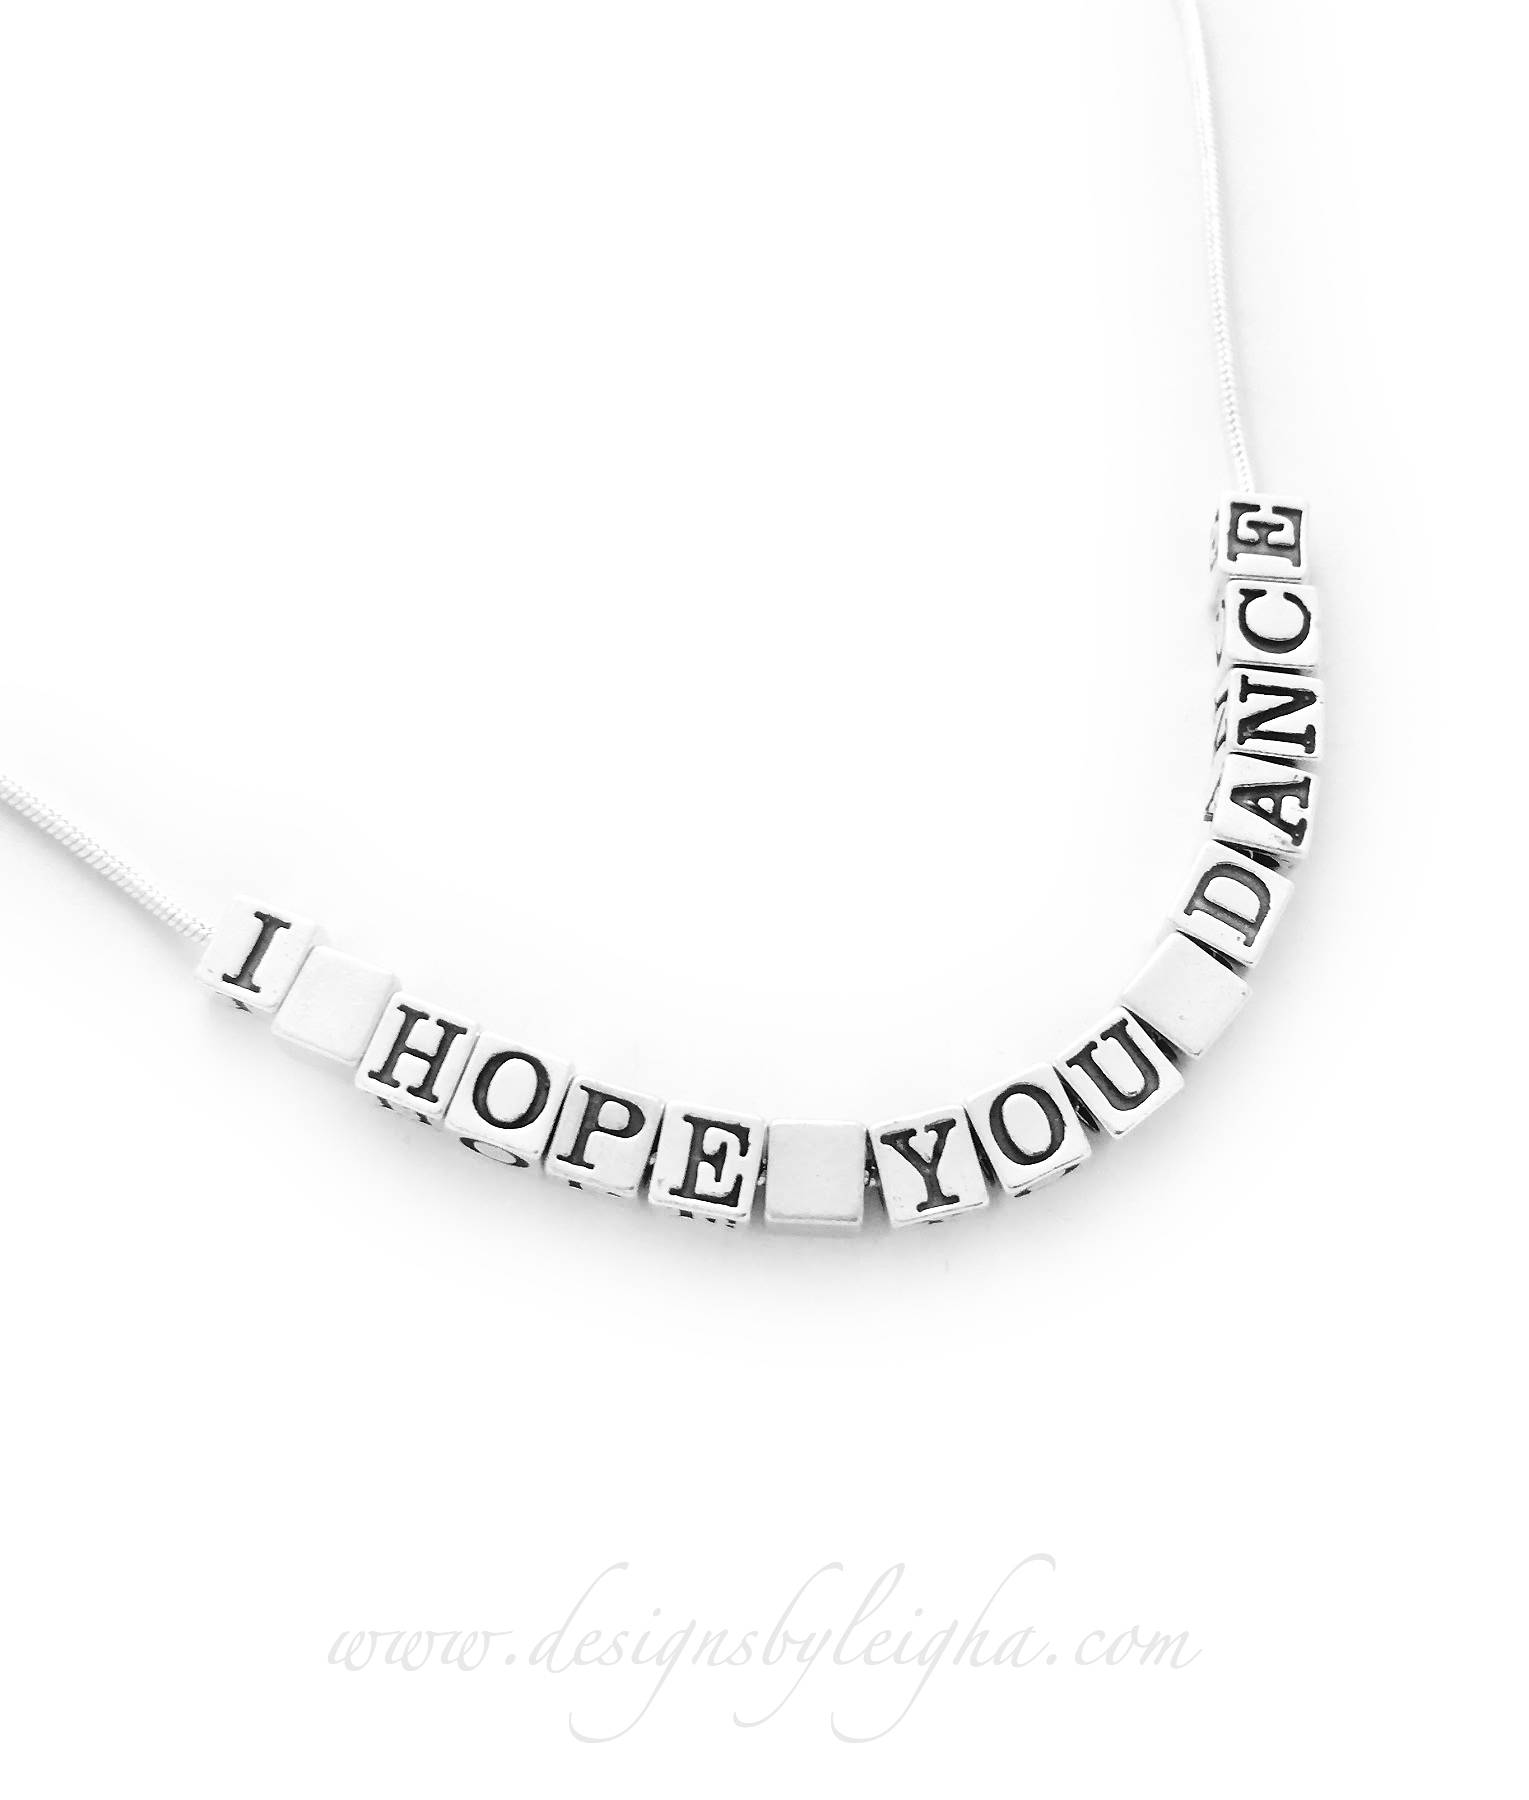 "DBL-N-Snake Necklace (Message Necklace)  Enter: I HOPE YOU DANCE Pick: 13 characters  Spacers: None (free between words) Choose: 18"" smooth snake necklace"